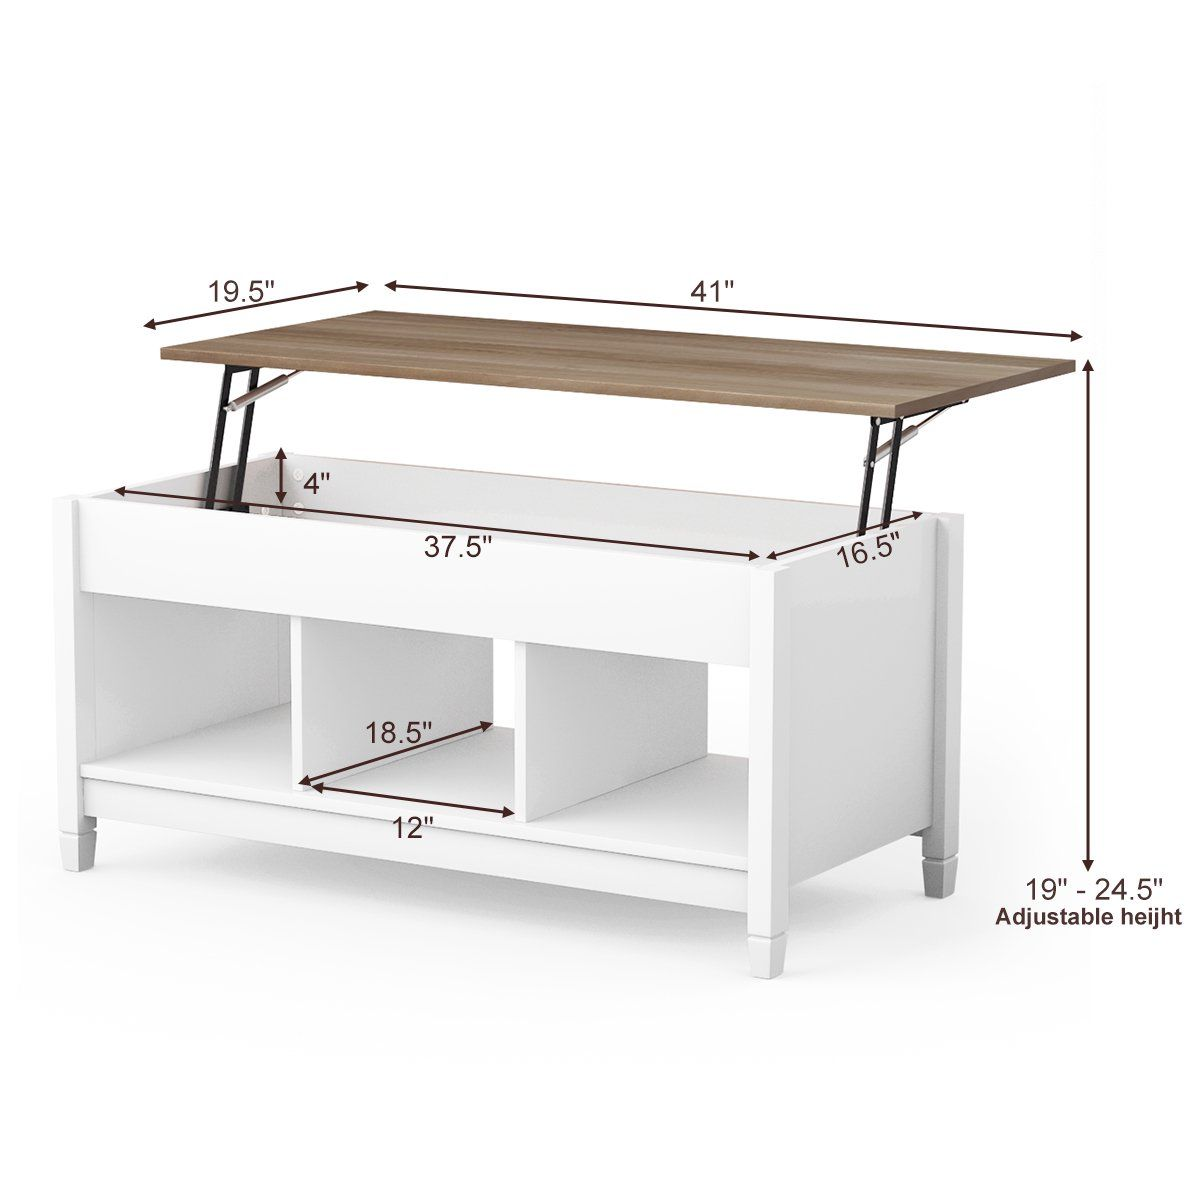 Costway lift top coffee table w hidden compartment and